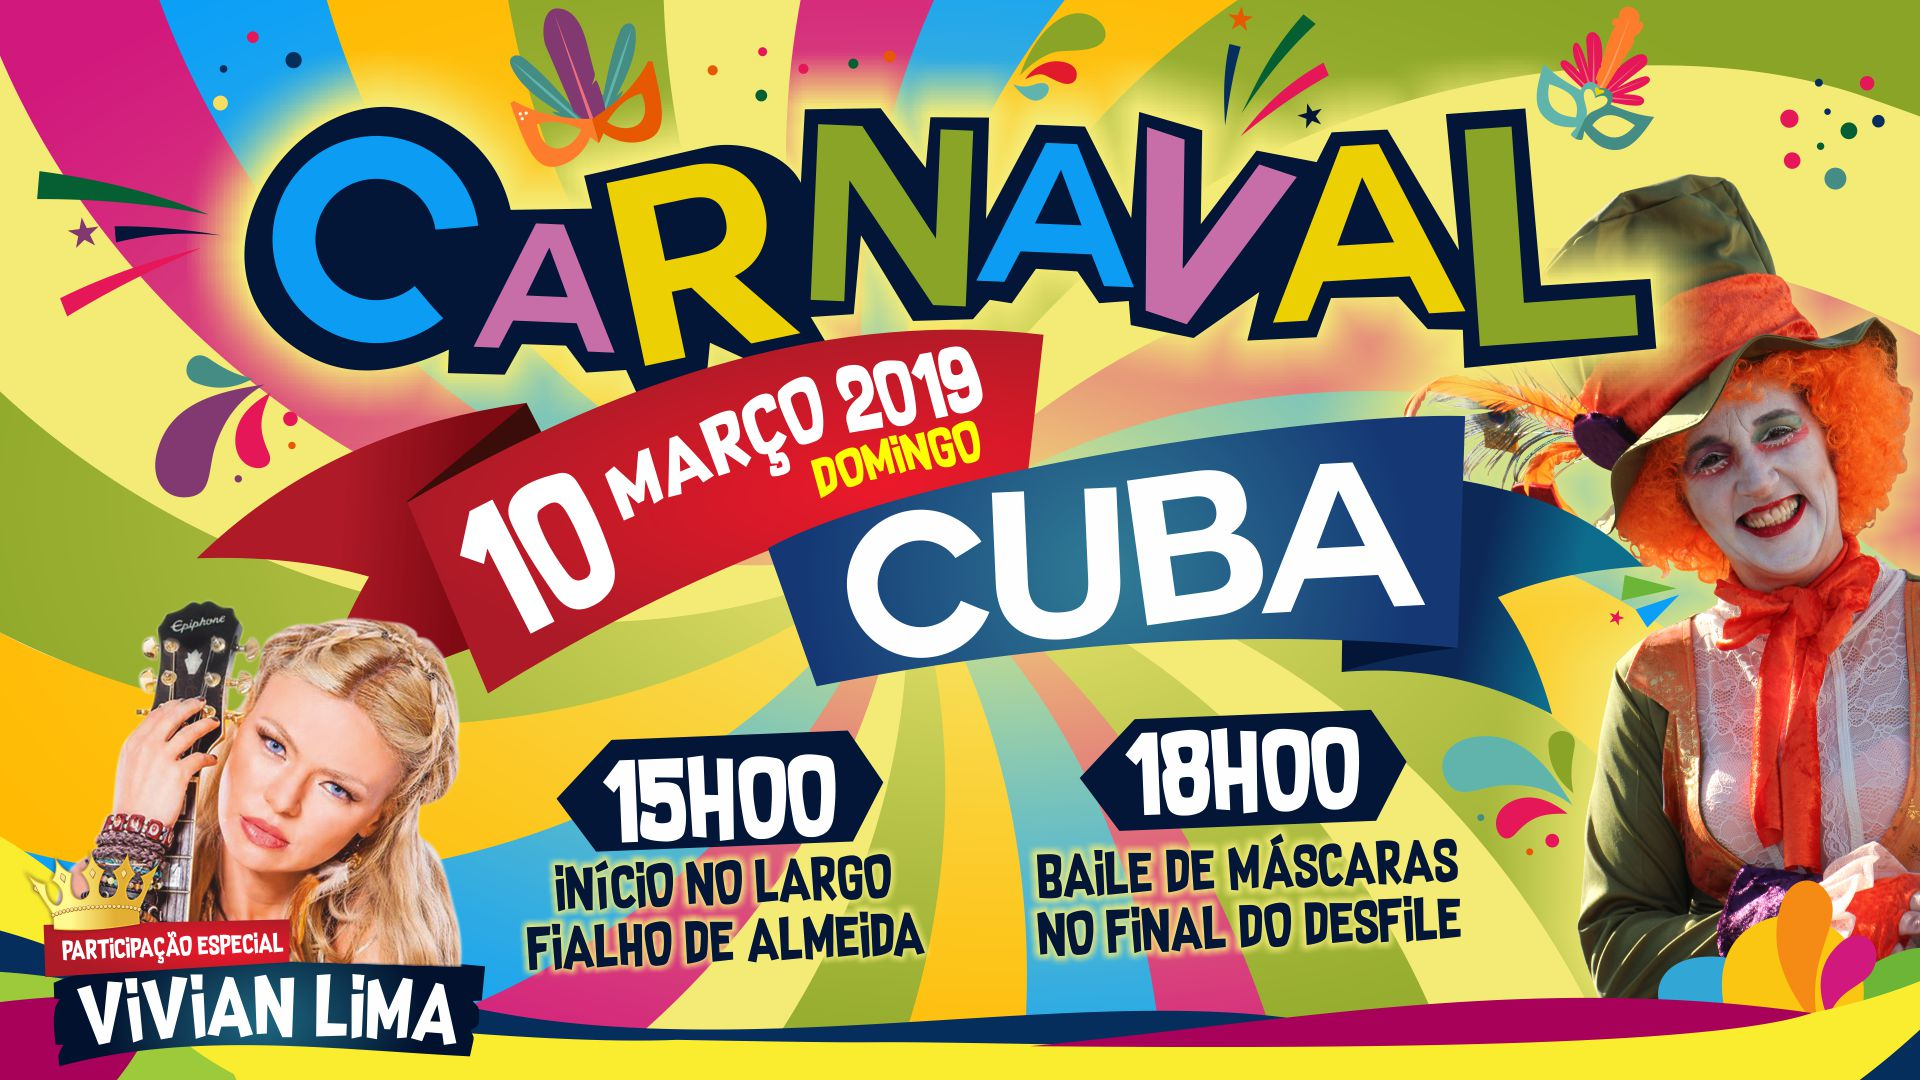 EVENTO FACEBOOKCARNAVAL DOMINGO